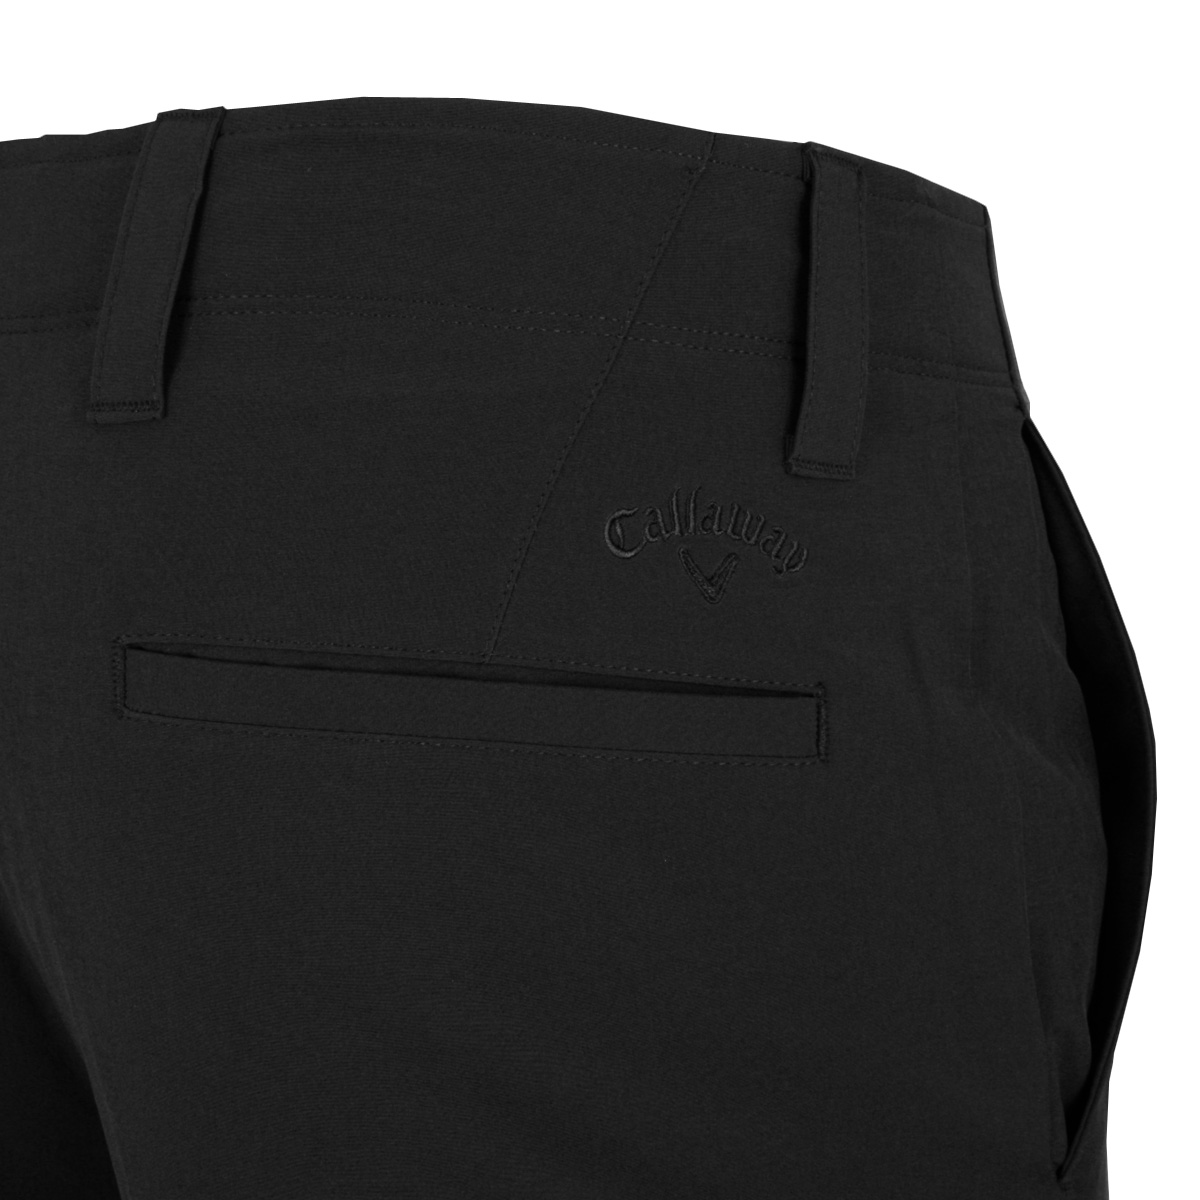 Callaway-Mens-2019-Chev-Tech-II-Lightweight-Stretch-Golf-Trousers-28-OFF-RRP thumbnail 7